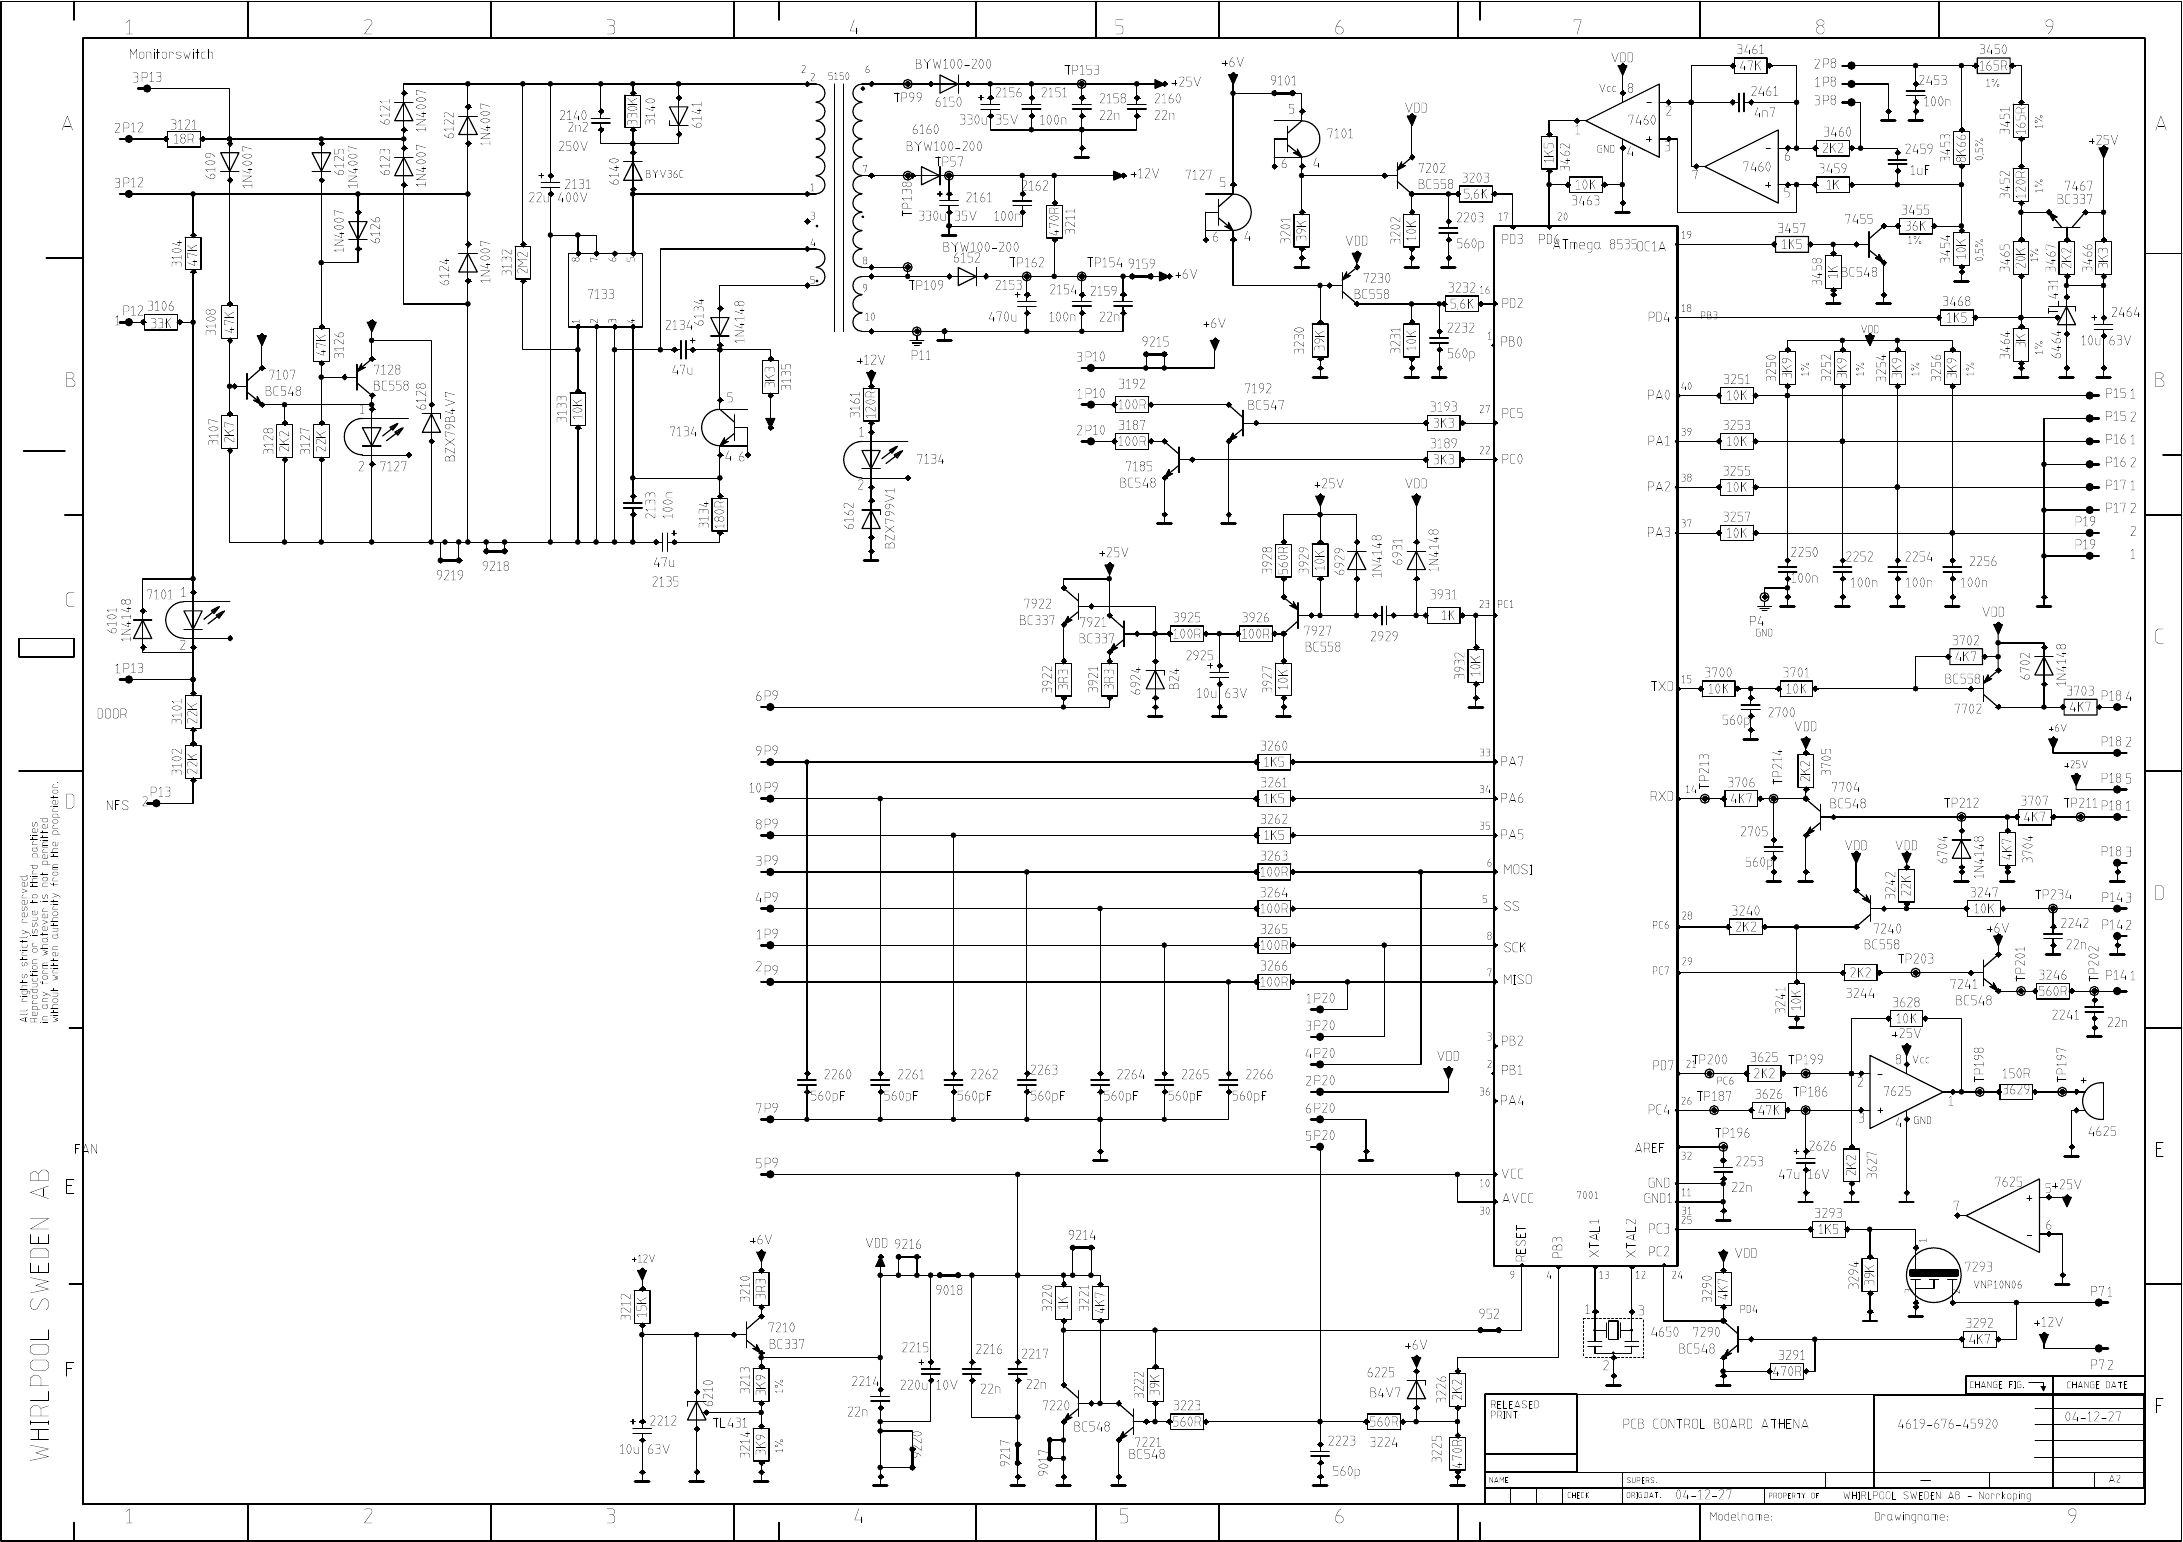 whirlpool microwave wiring diagram Download-UPDATE DWG 11-k